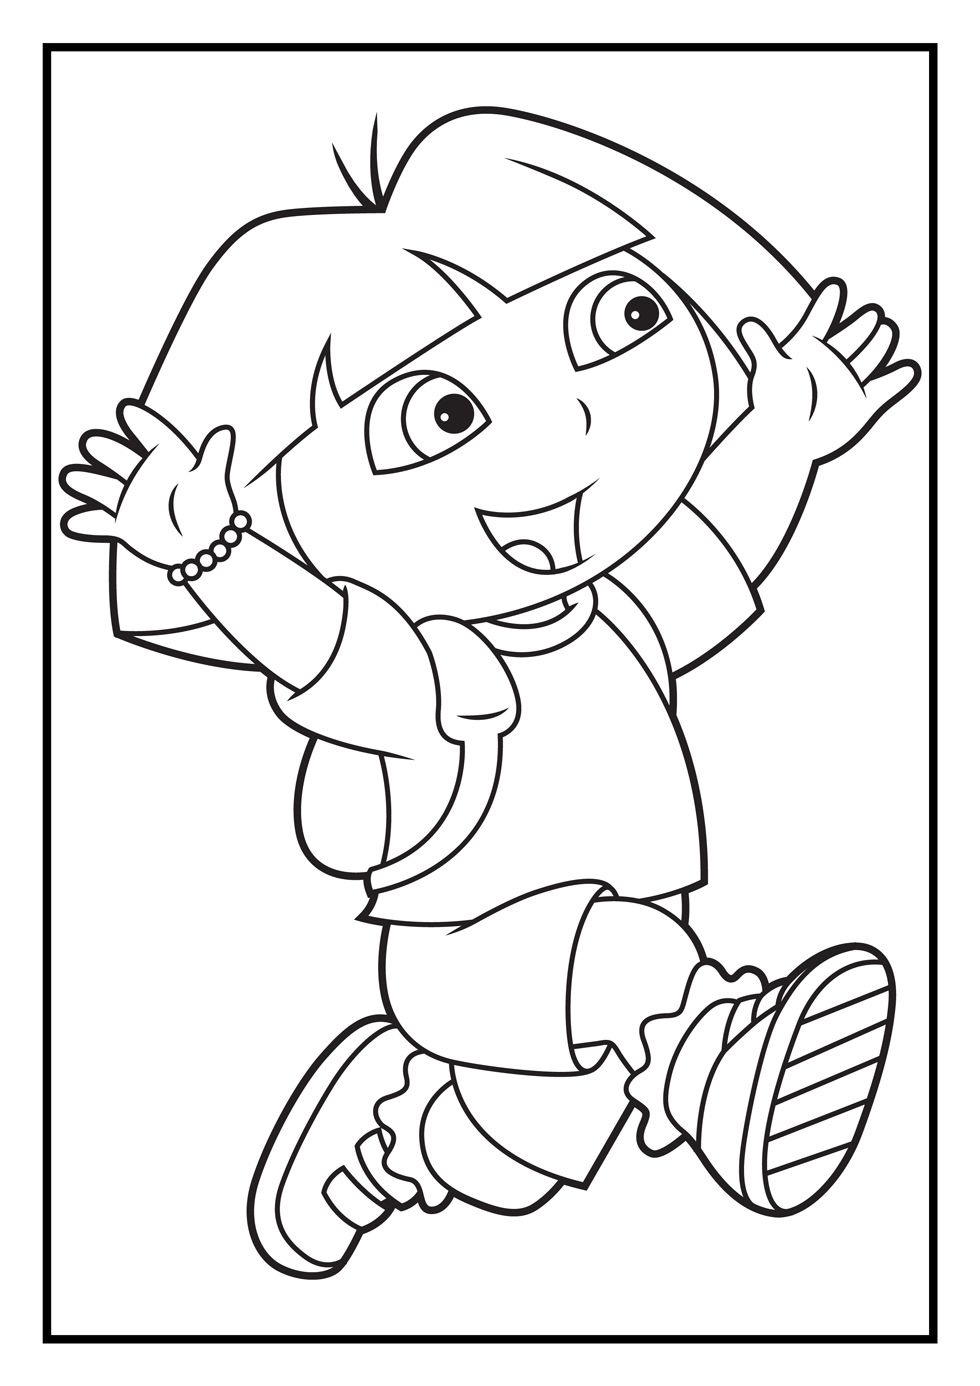 Stunning Dora Coloring Pages To Print Out According